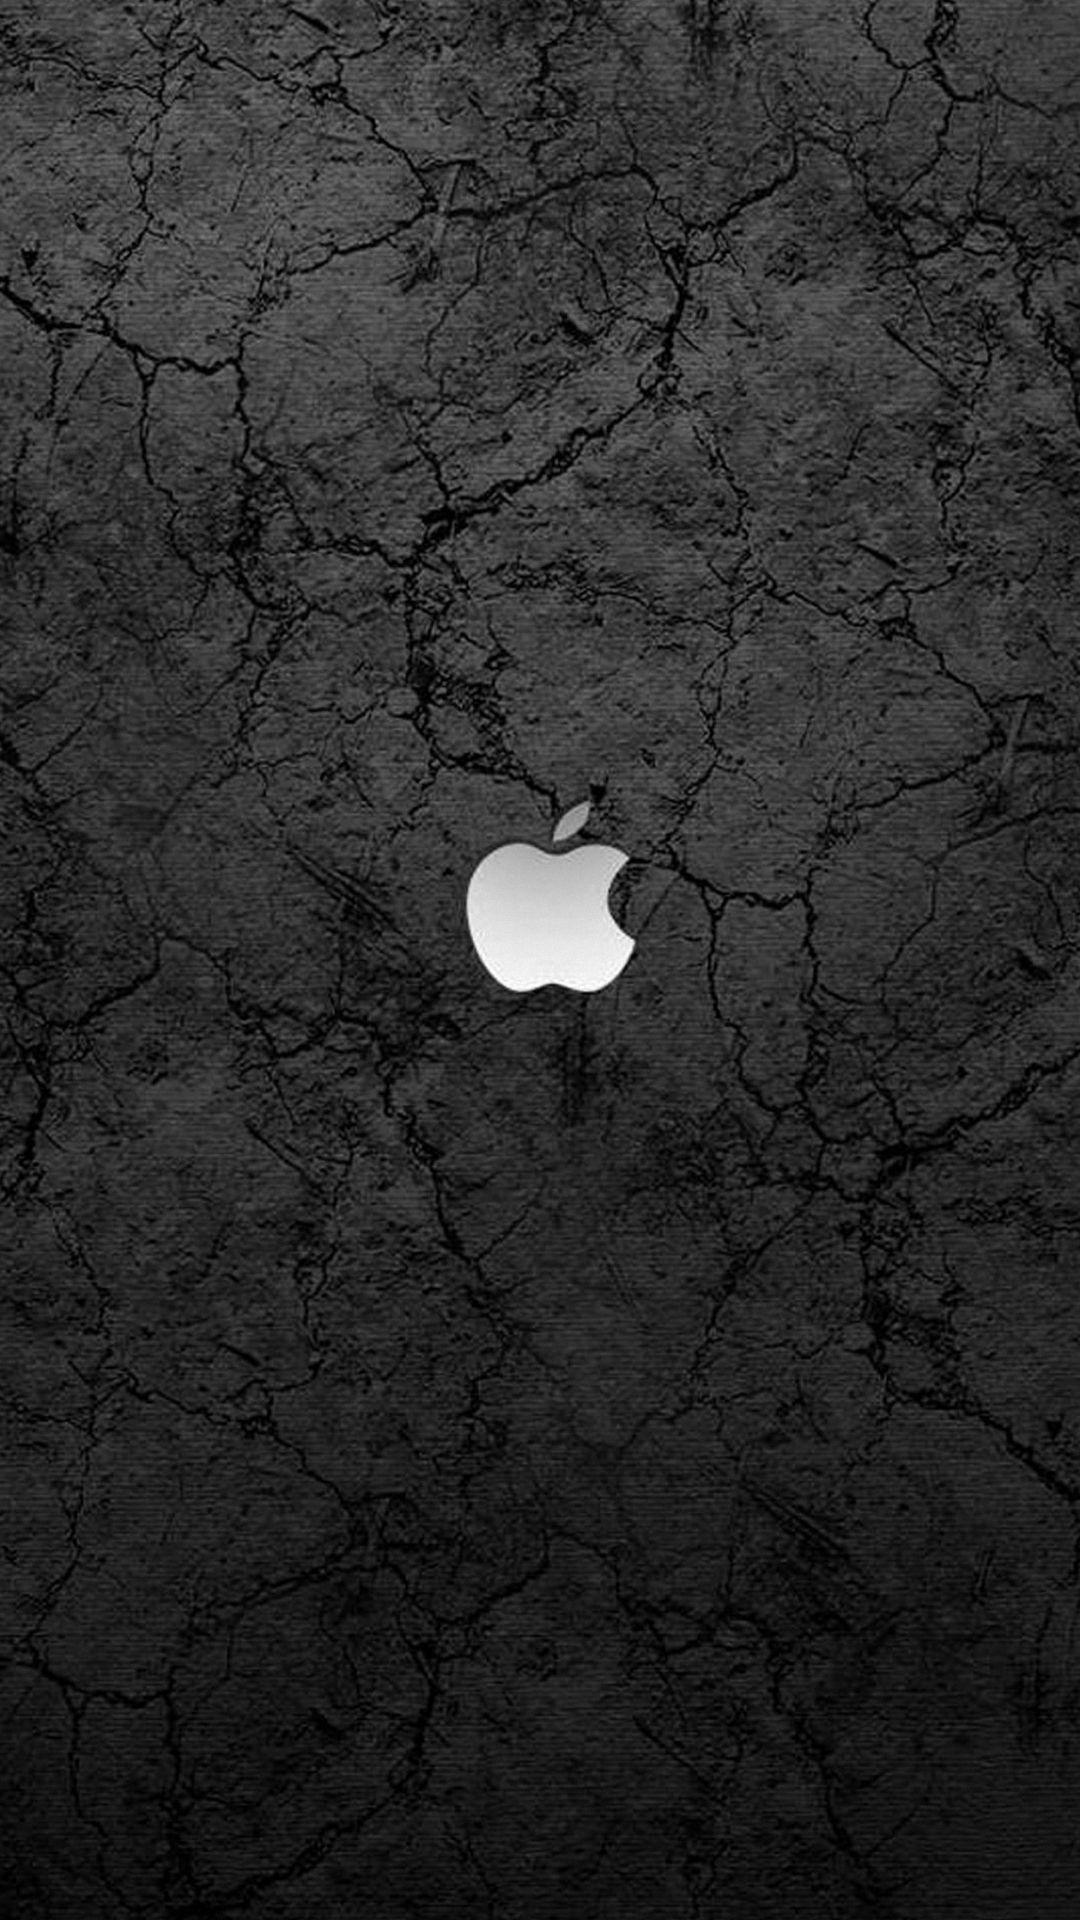 black white apple iphone 6 wallpapers hd | apple fever! | pinterest